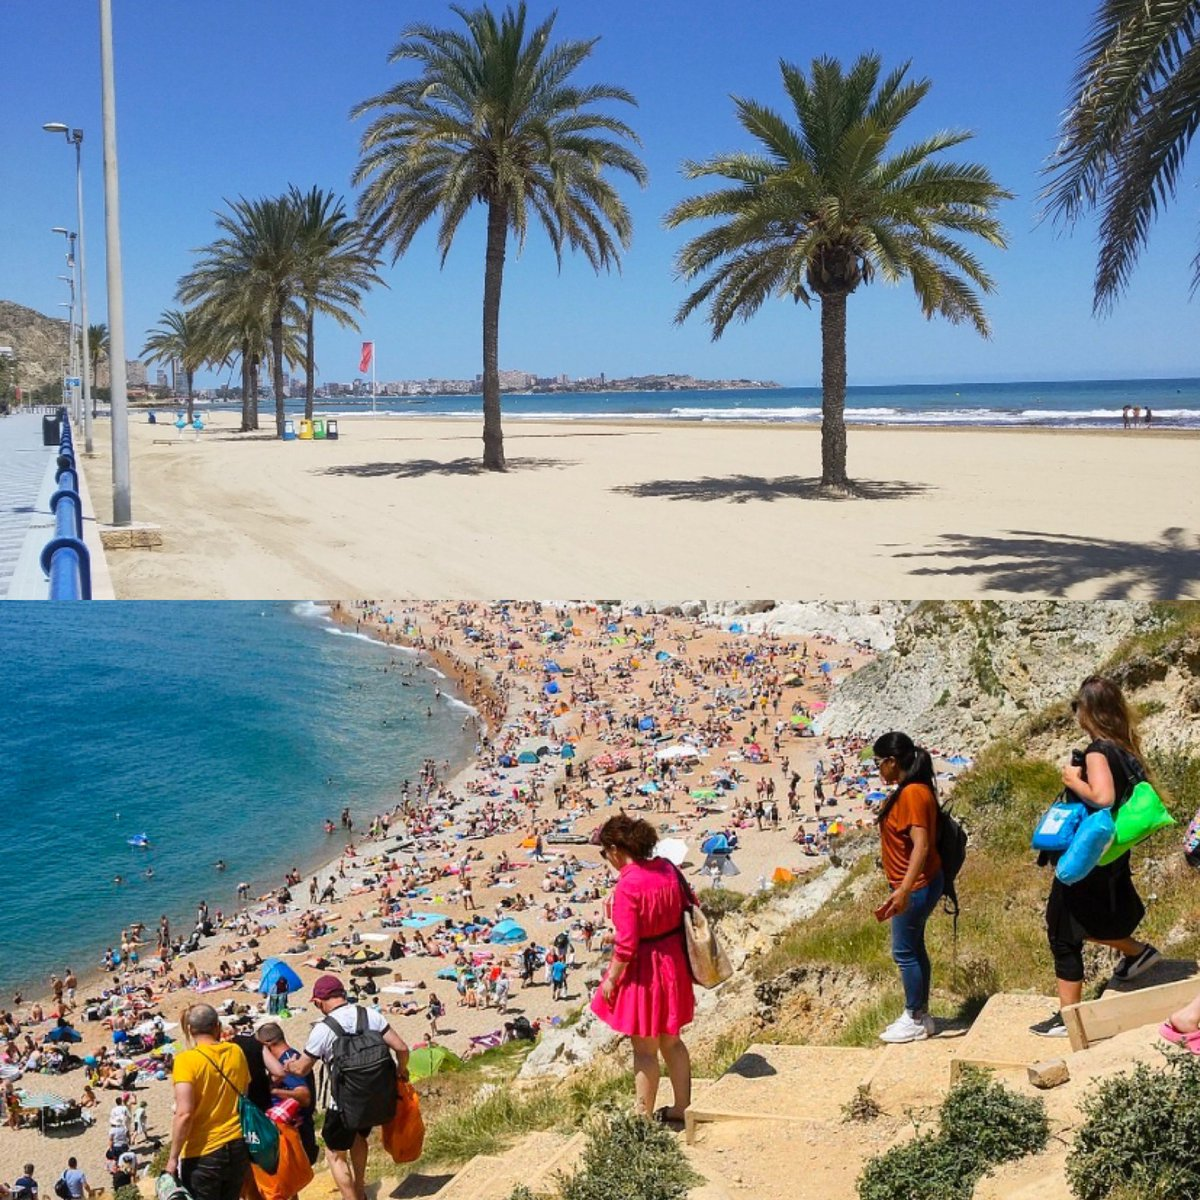 Beach in southeast Spain today versus beach in southwest England   #SecondWave #SocialDistancing pic.twitter.com/mgeU5AYhRT